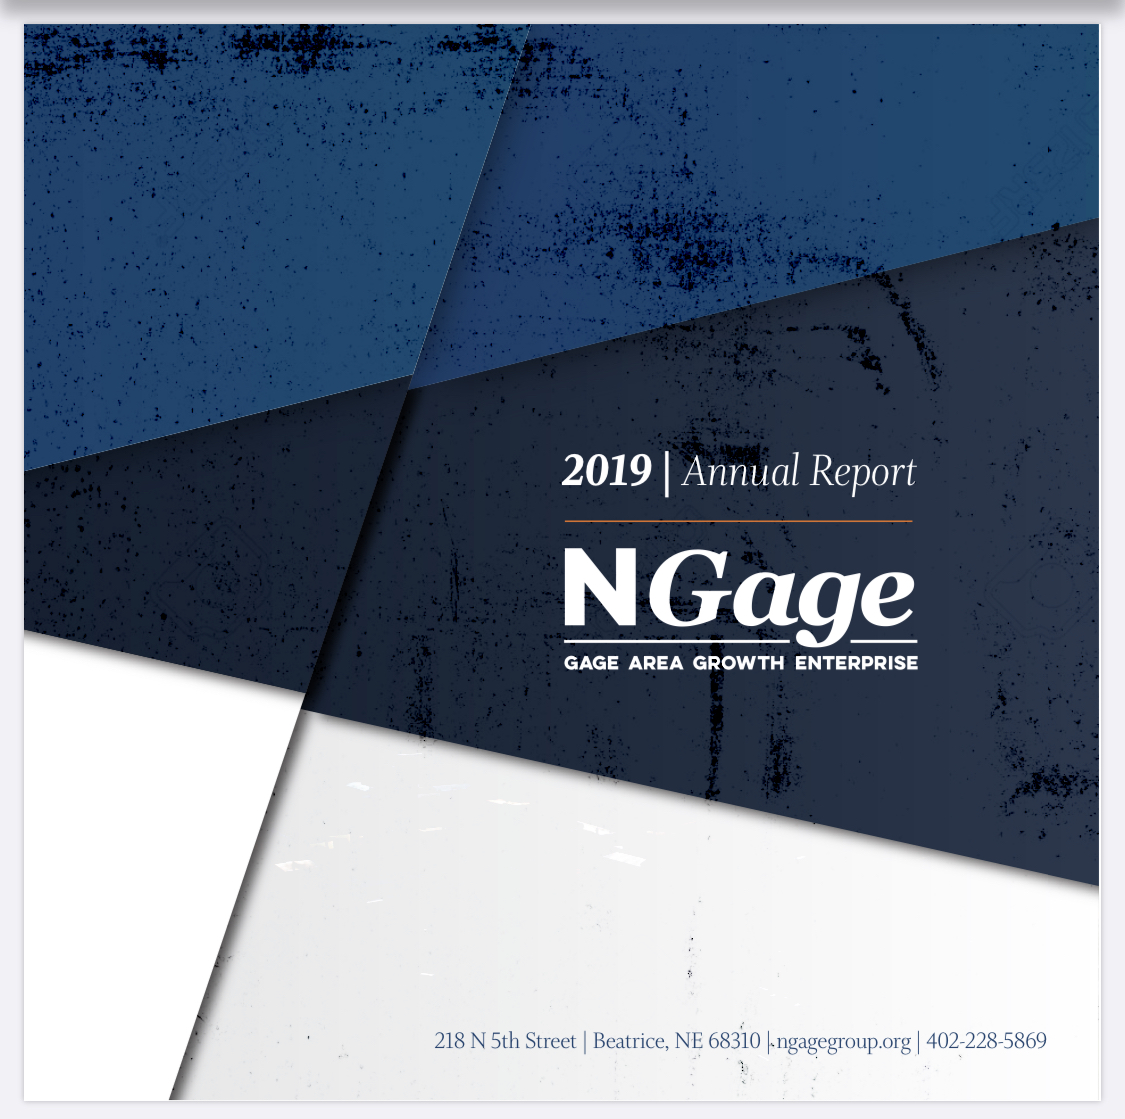 Thumbnail Image For NGage 2019 Annual Report - Click Here To See